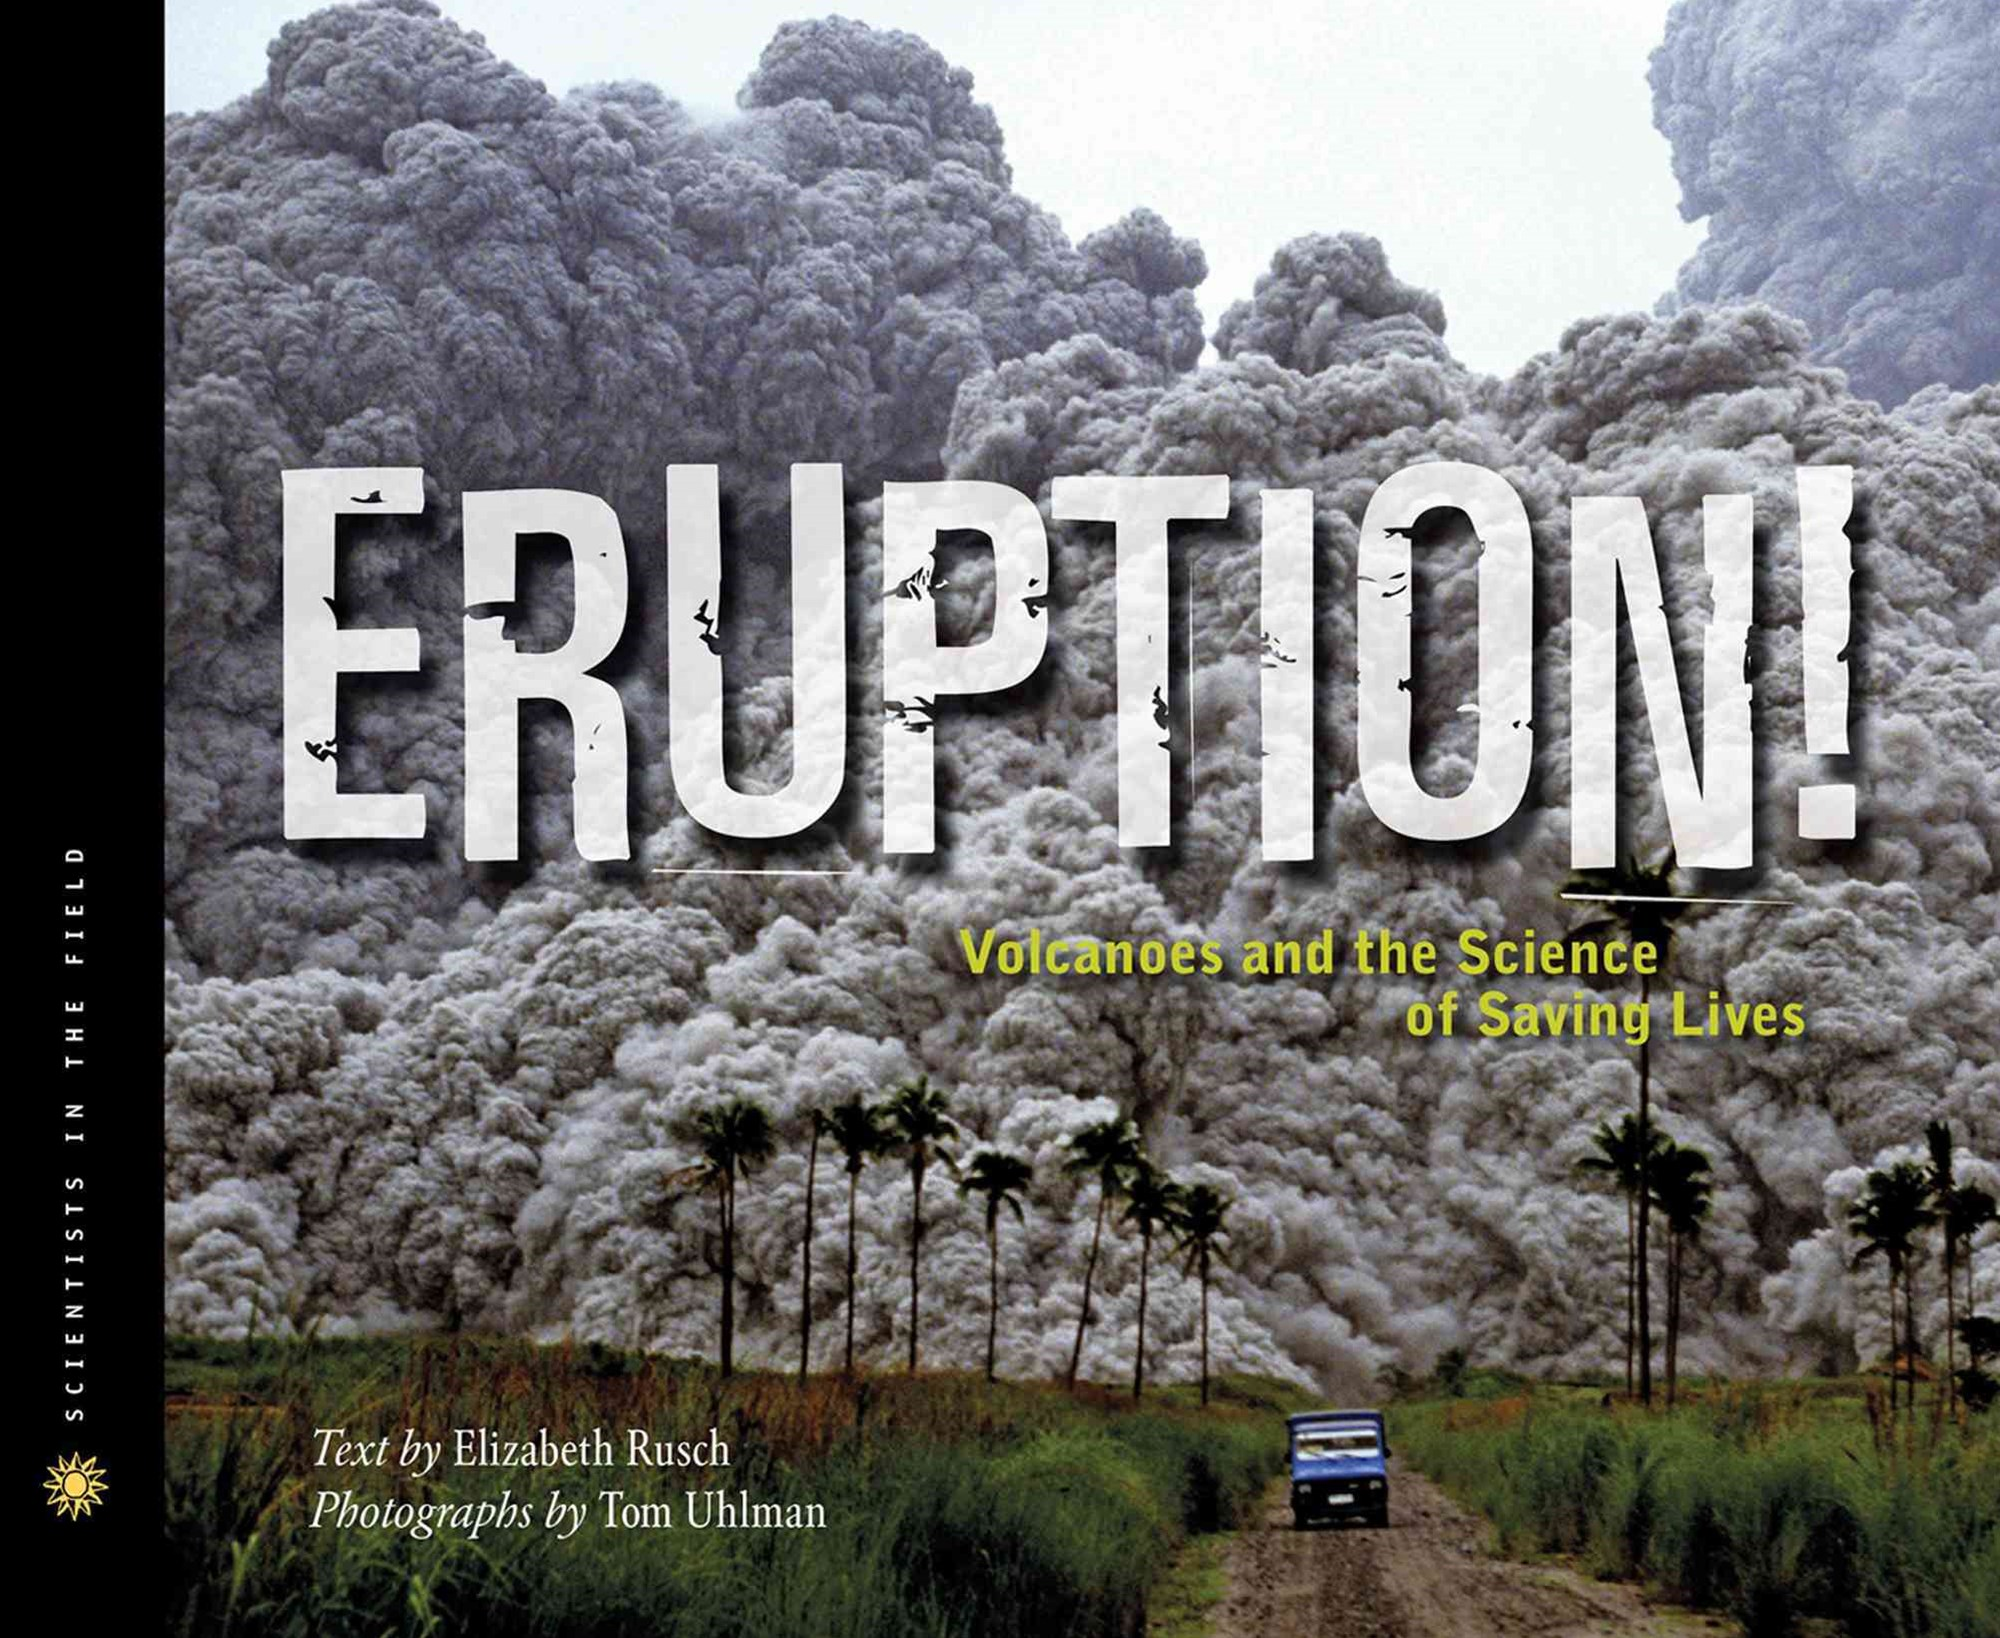 Eruption! Volcanoes and the Science of Saving Lives